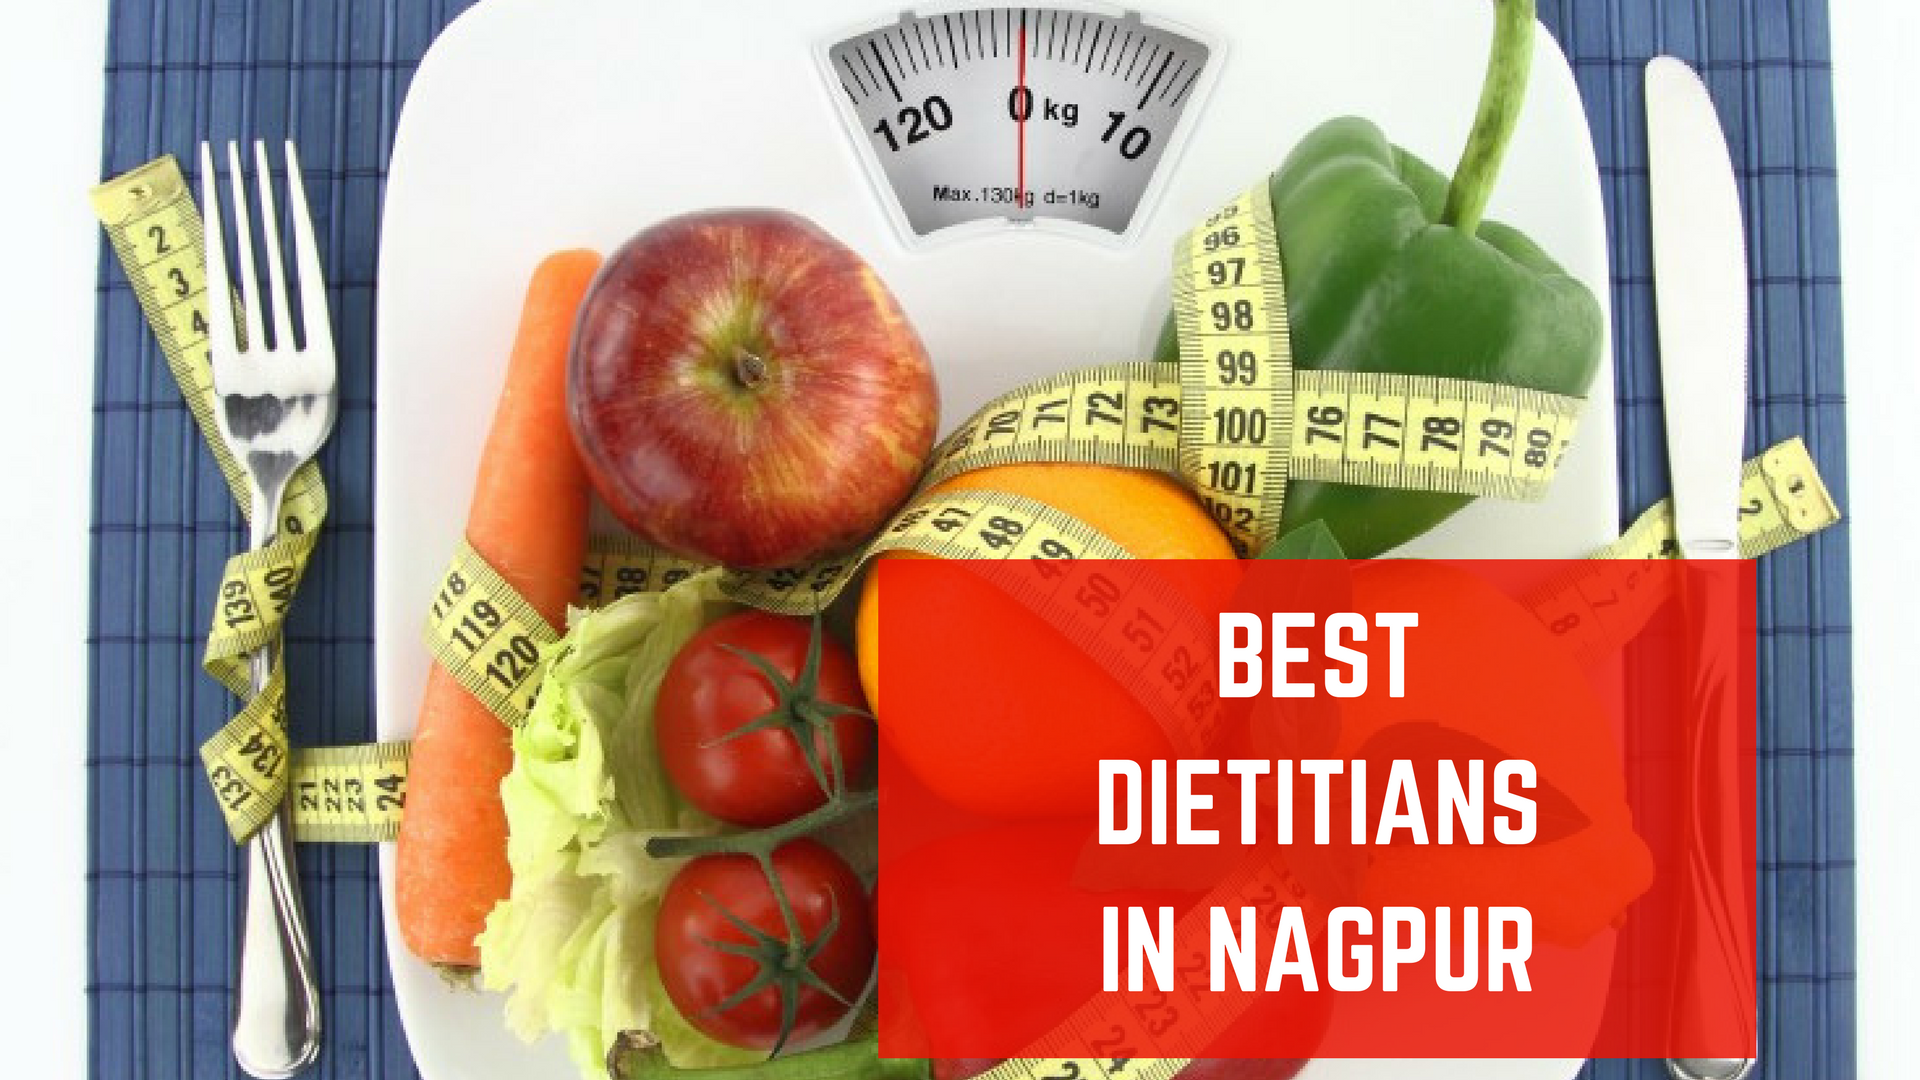 Top 10 Best Dietitians in Nagpur - Essencz